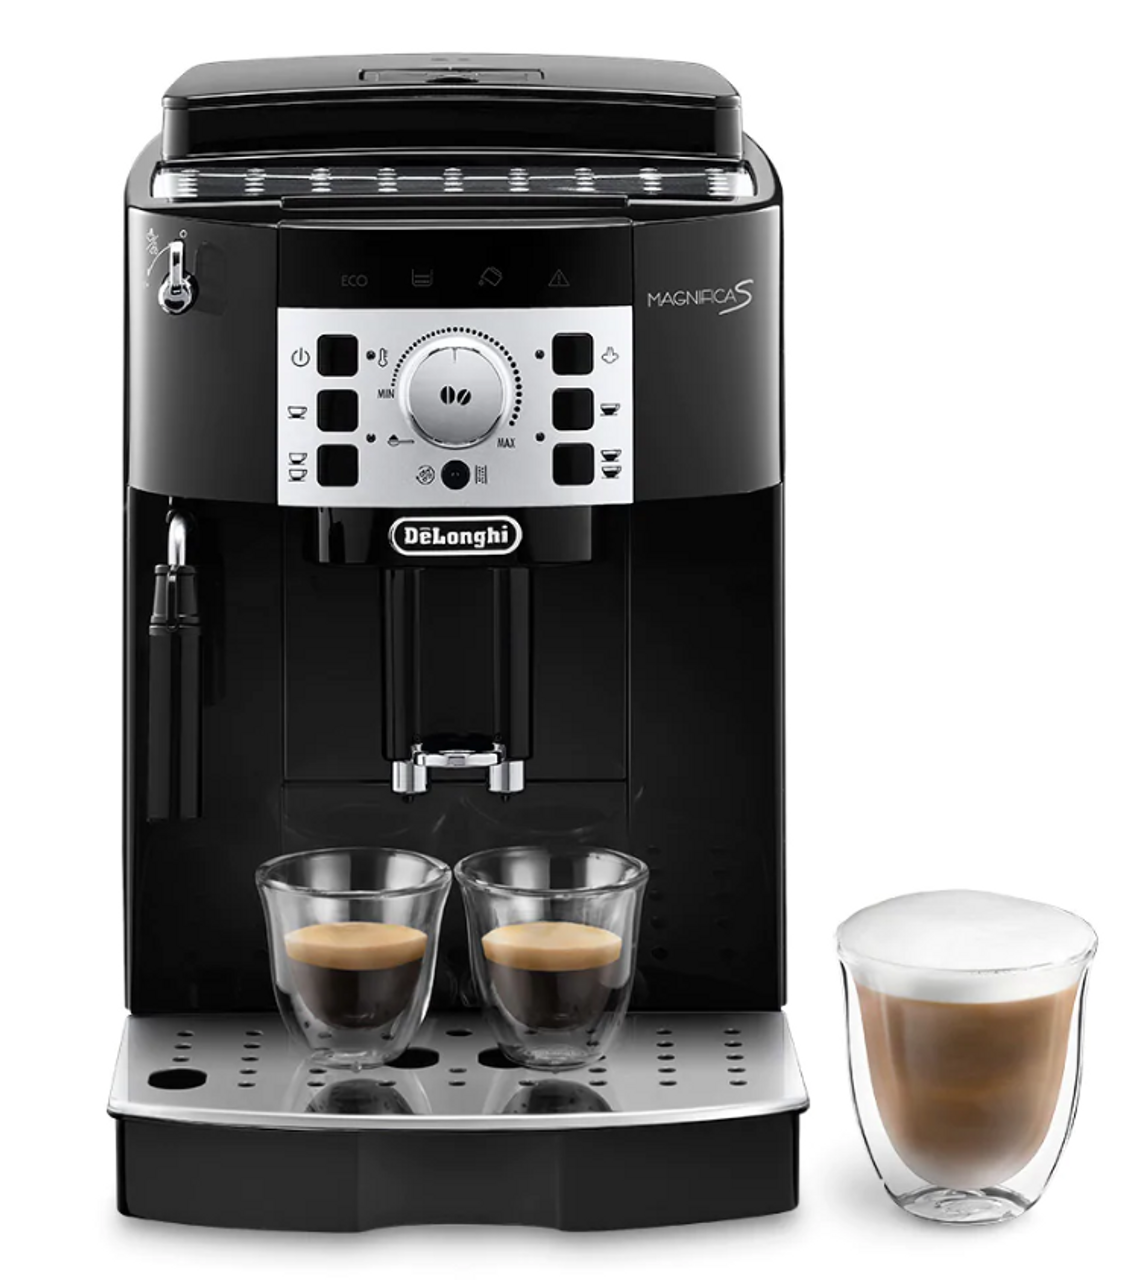 Delonghi ECAM22110B Magnifica S Fully Automatic Coffee Machine - Black - HURRY LAST 4!